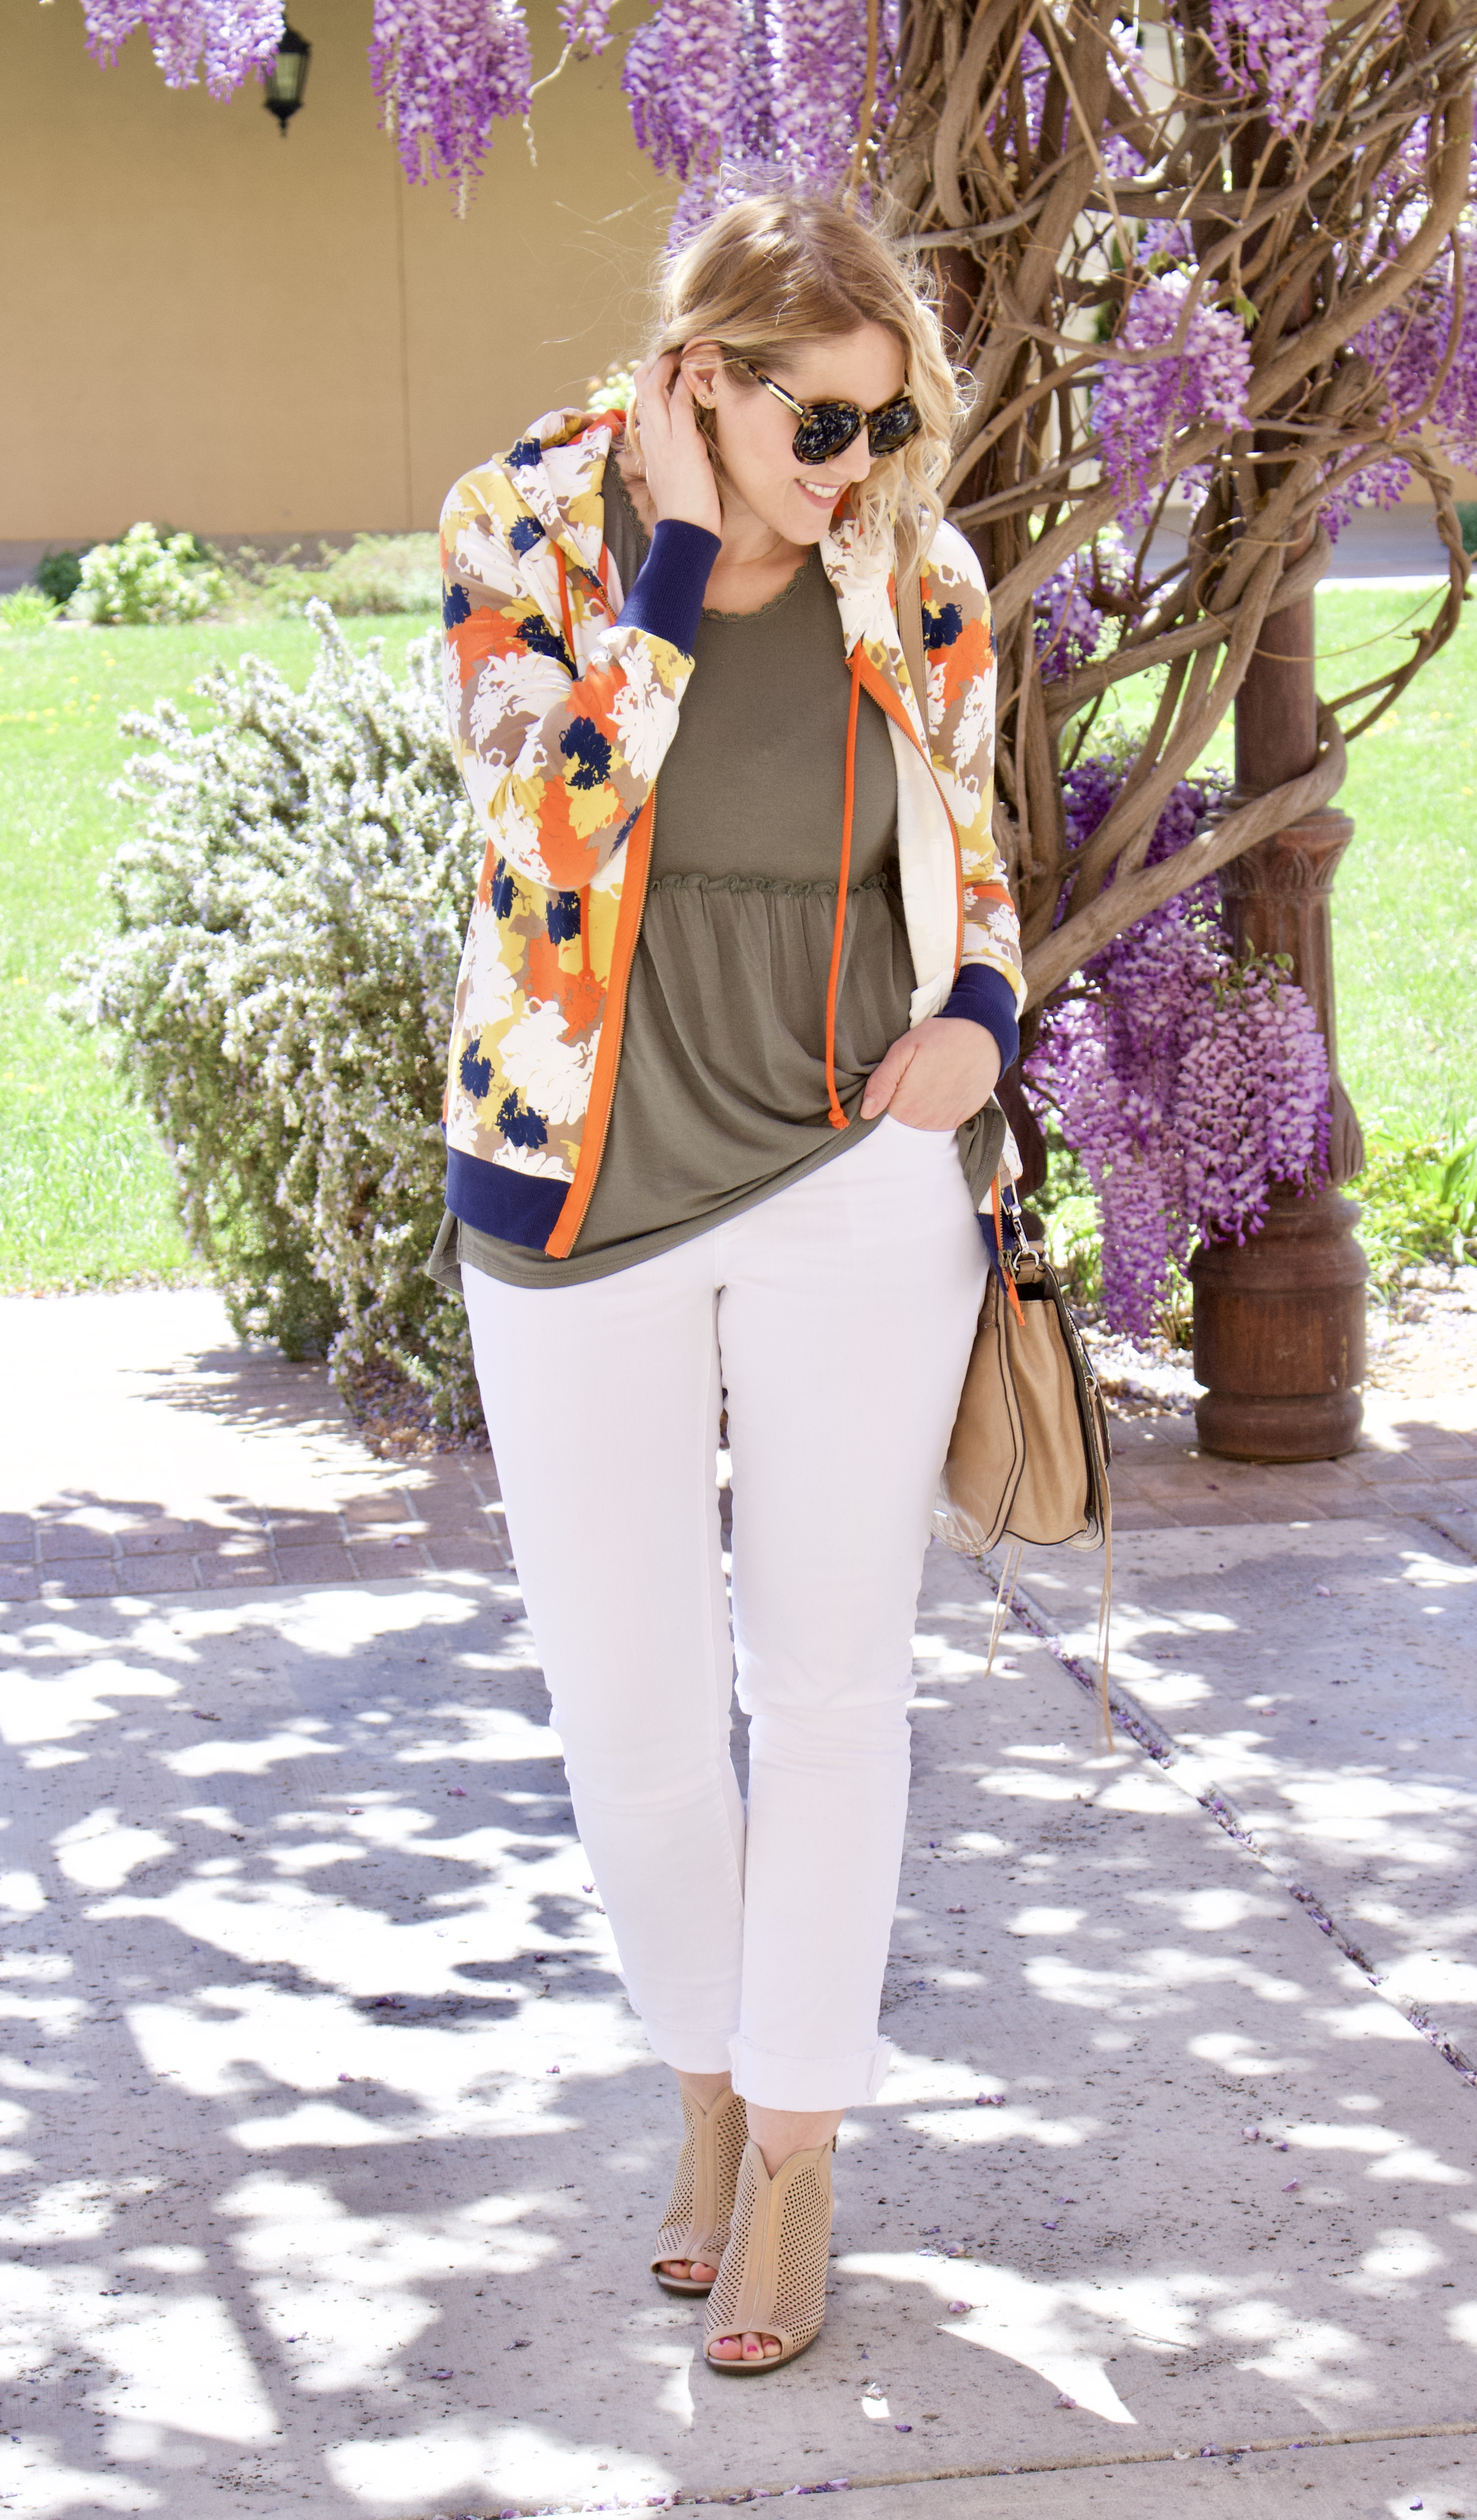 floral print jacket from Evy's Tree #evystree #floralprint #springstyle